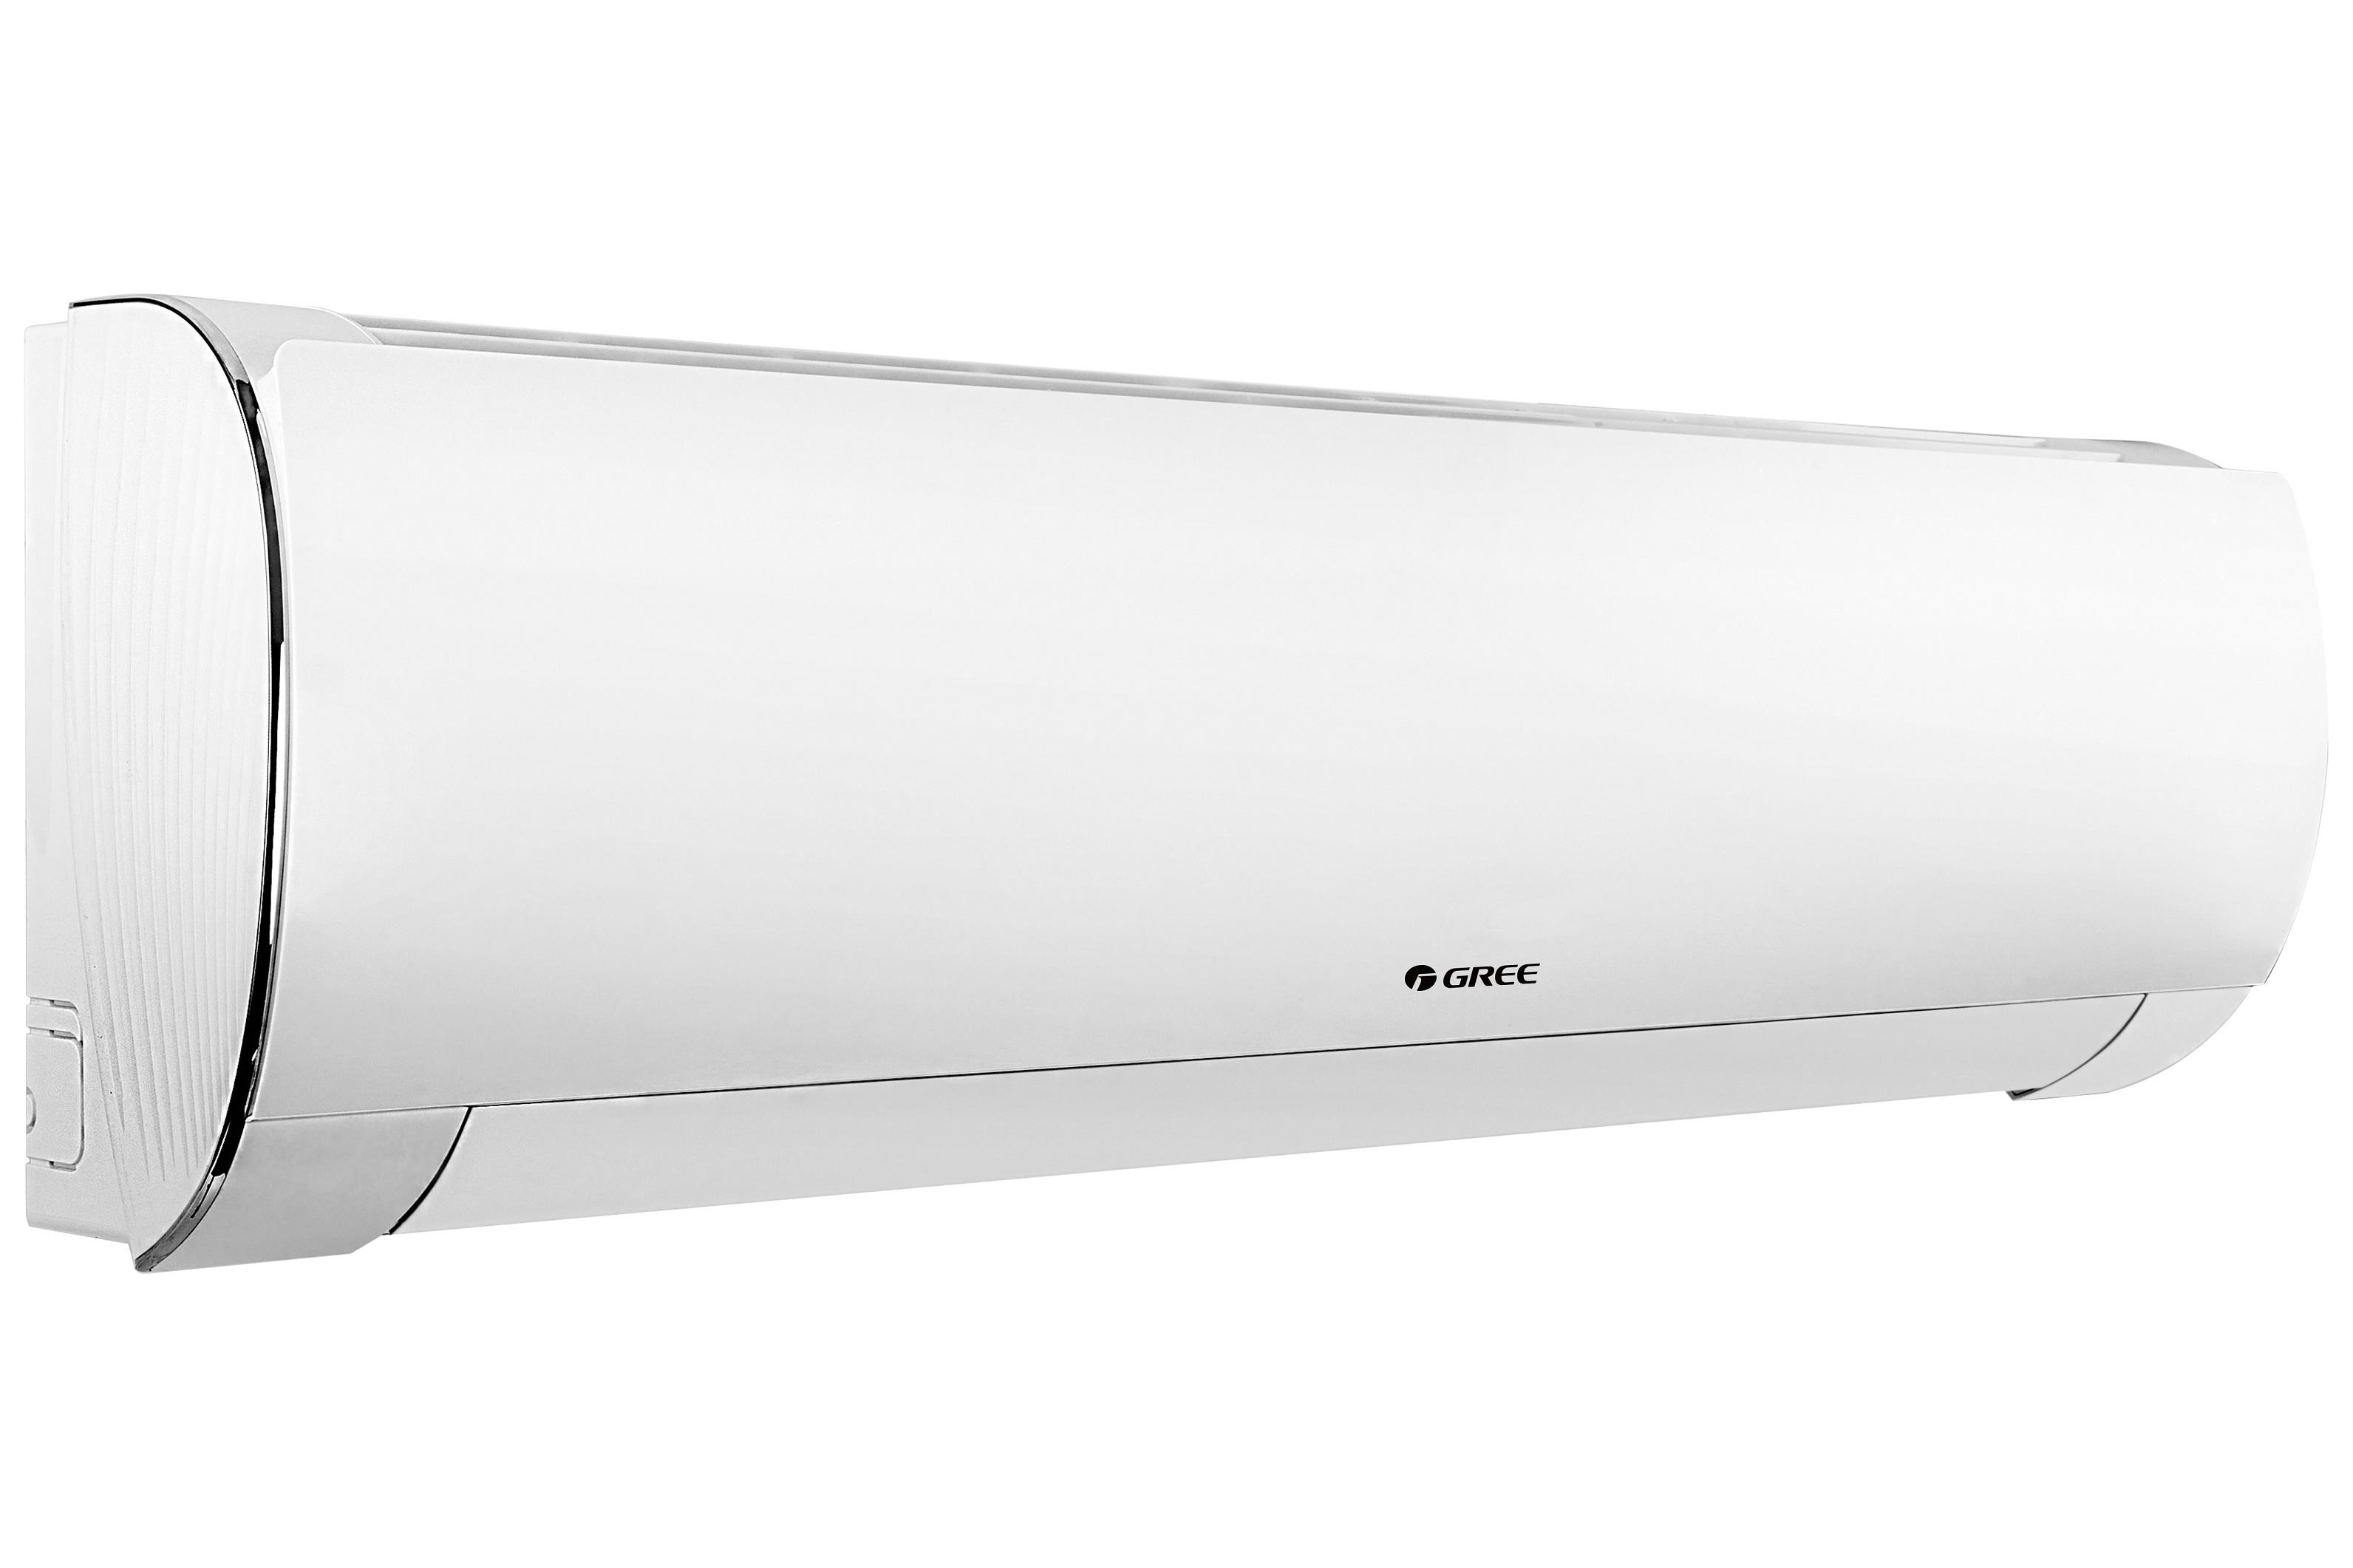 AC GREE 2 PK GWC-24F1 INVERTER - WHITE PEARL [INDOOR+OUTDOOR UNIT ONLY]